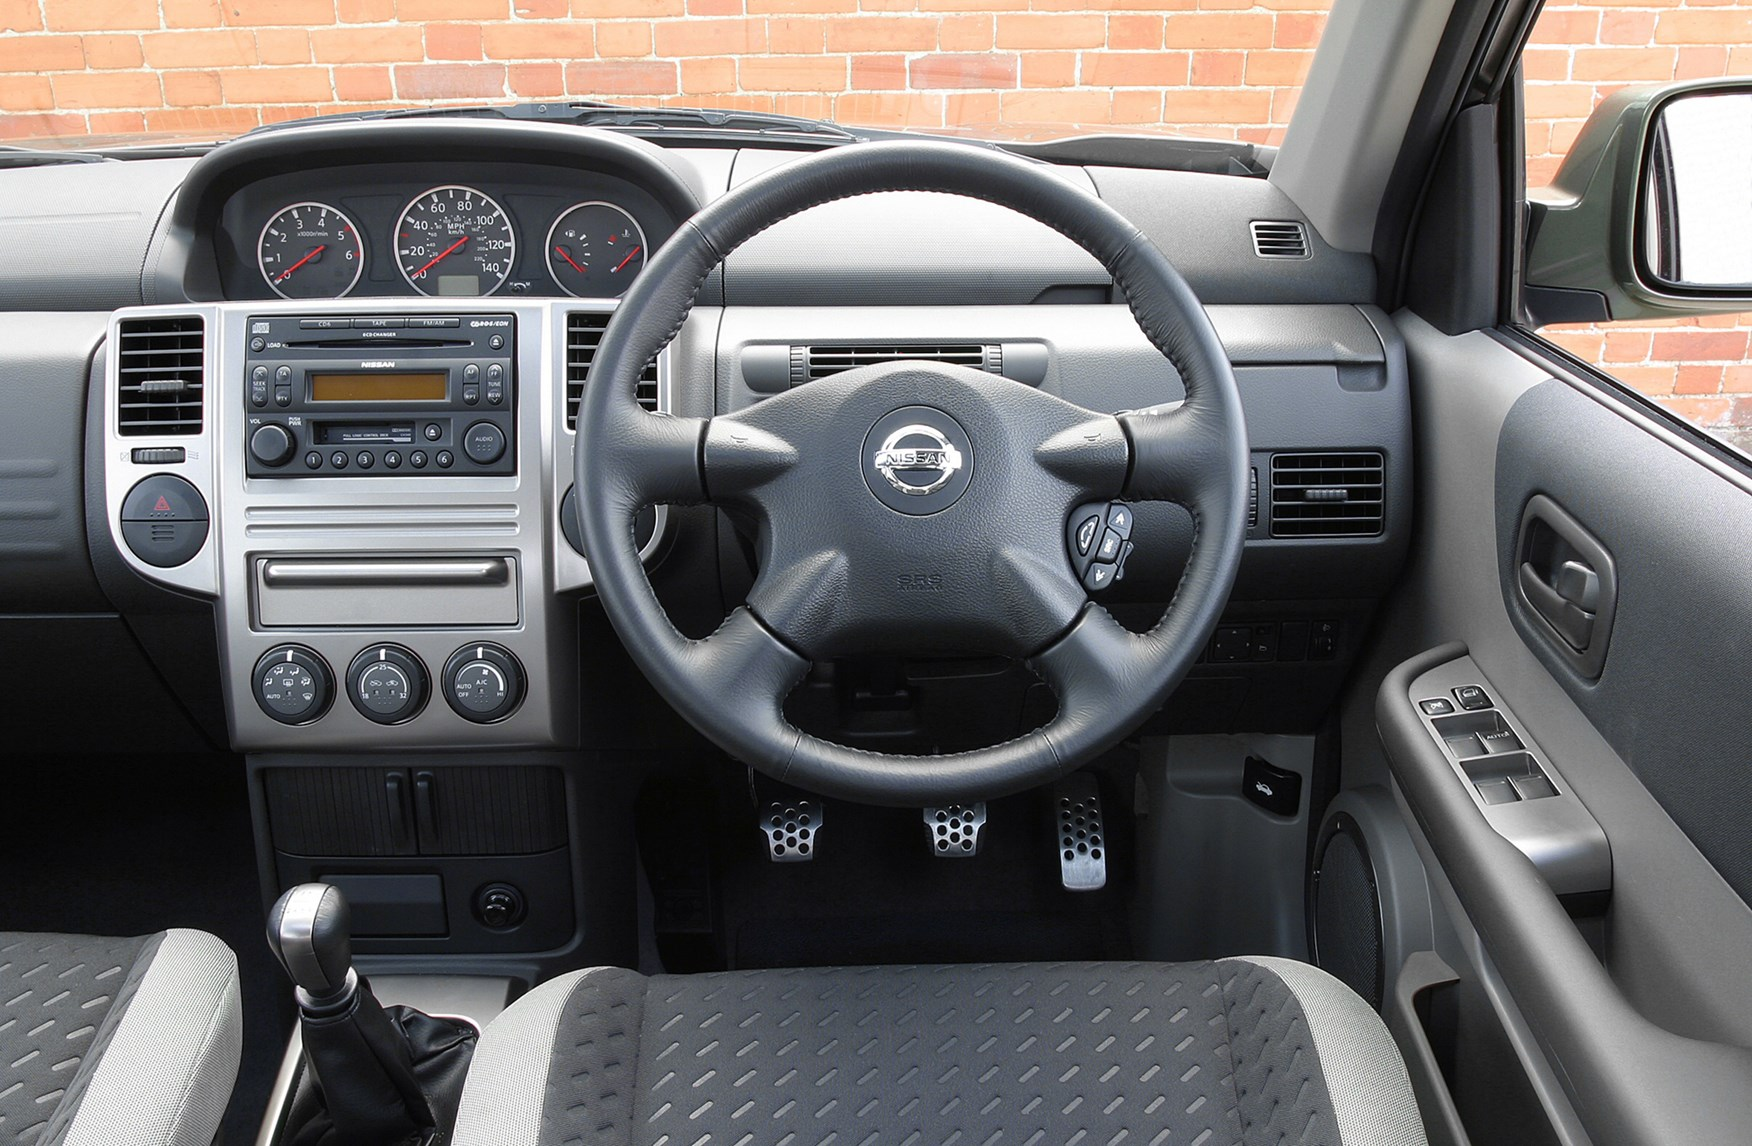 nissan x trail 2 5 petrol review cars inspiration gallery. Black Bedroom Furniture Sets. Home Design Ideas